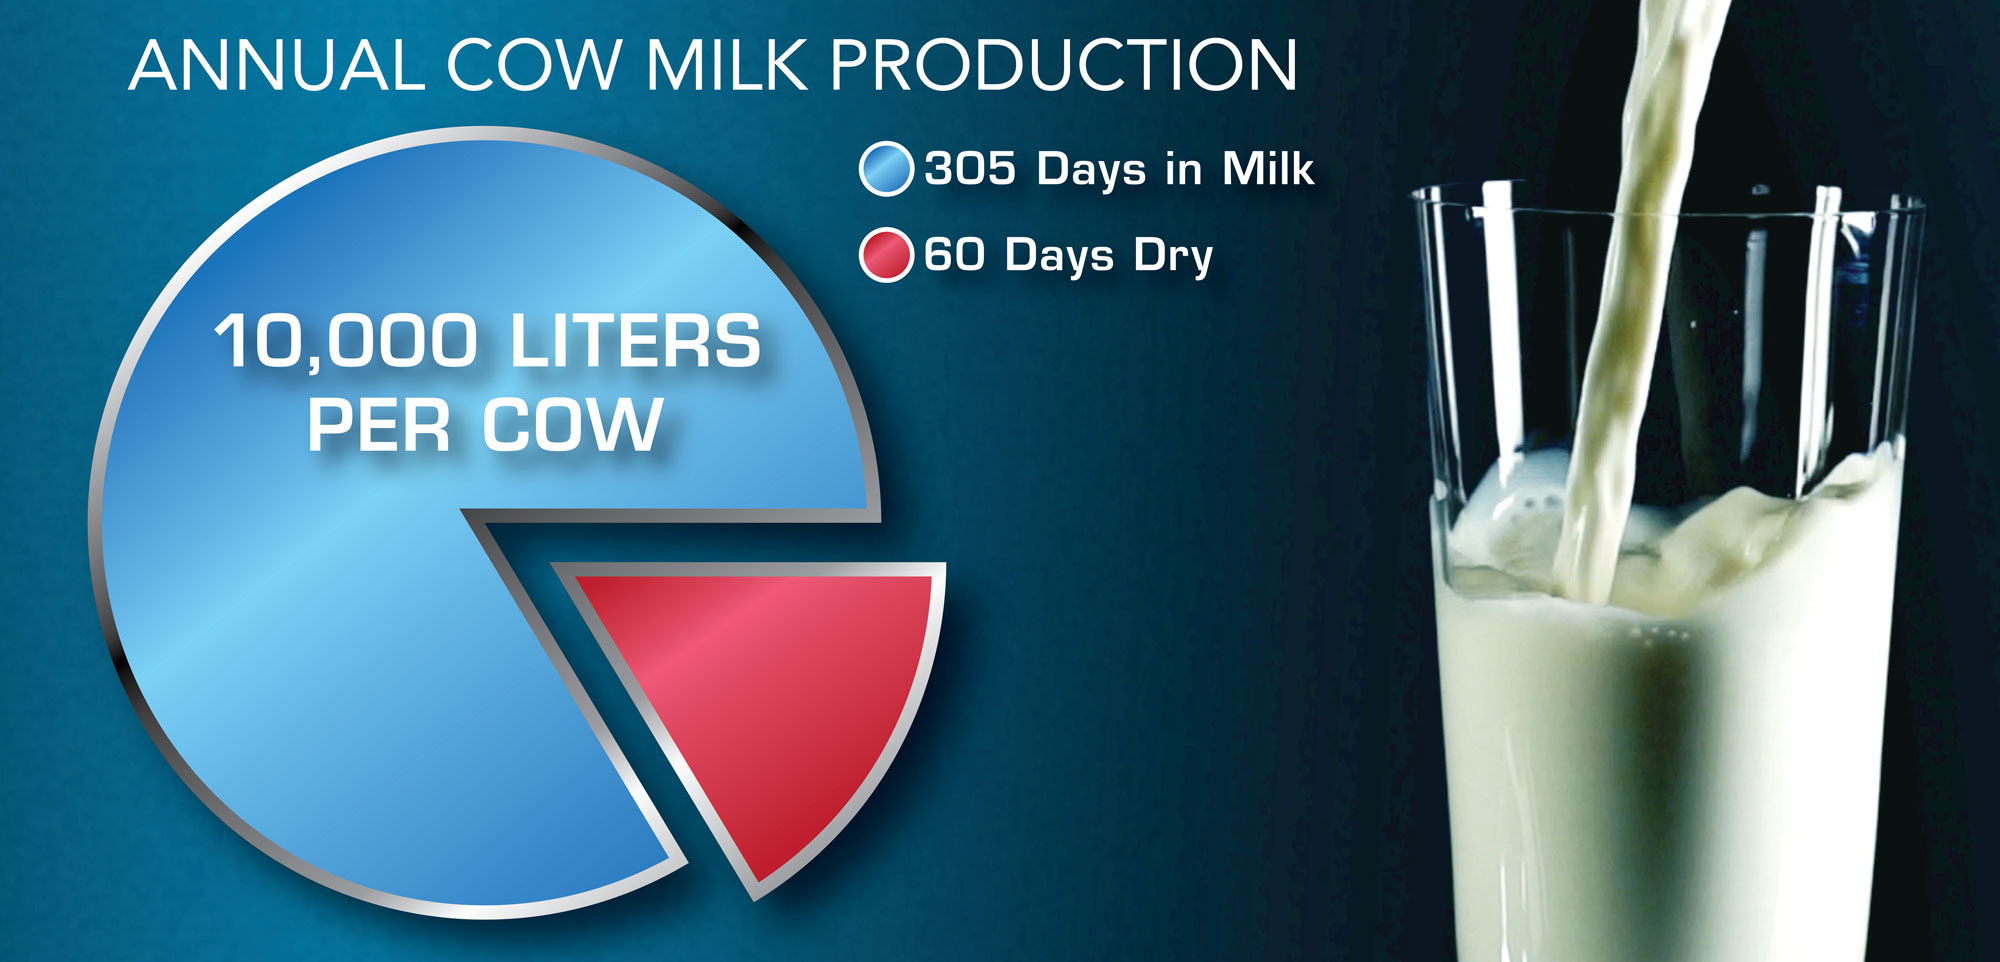 Annual Cow Milk Production chart